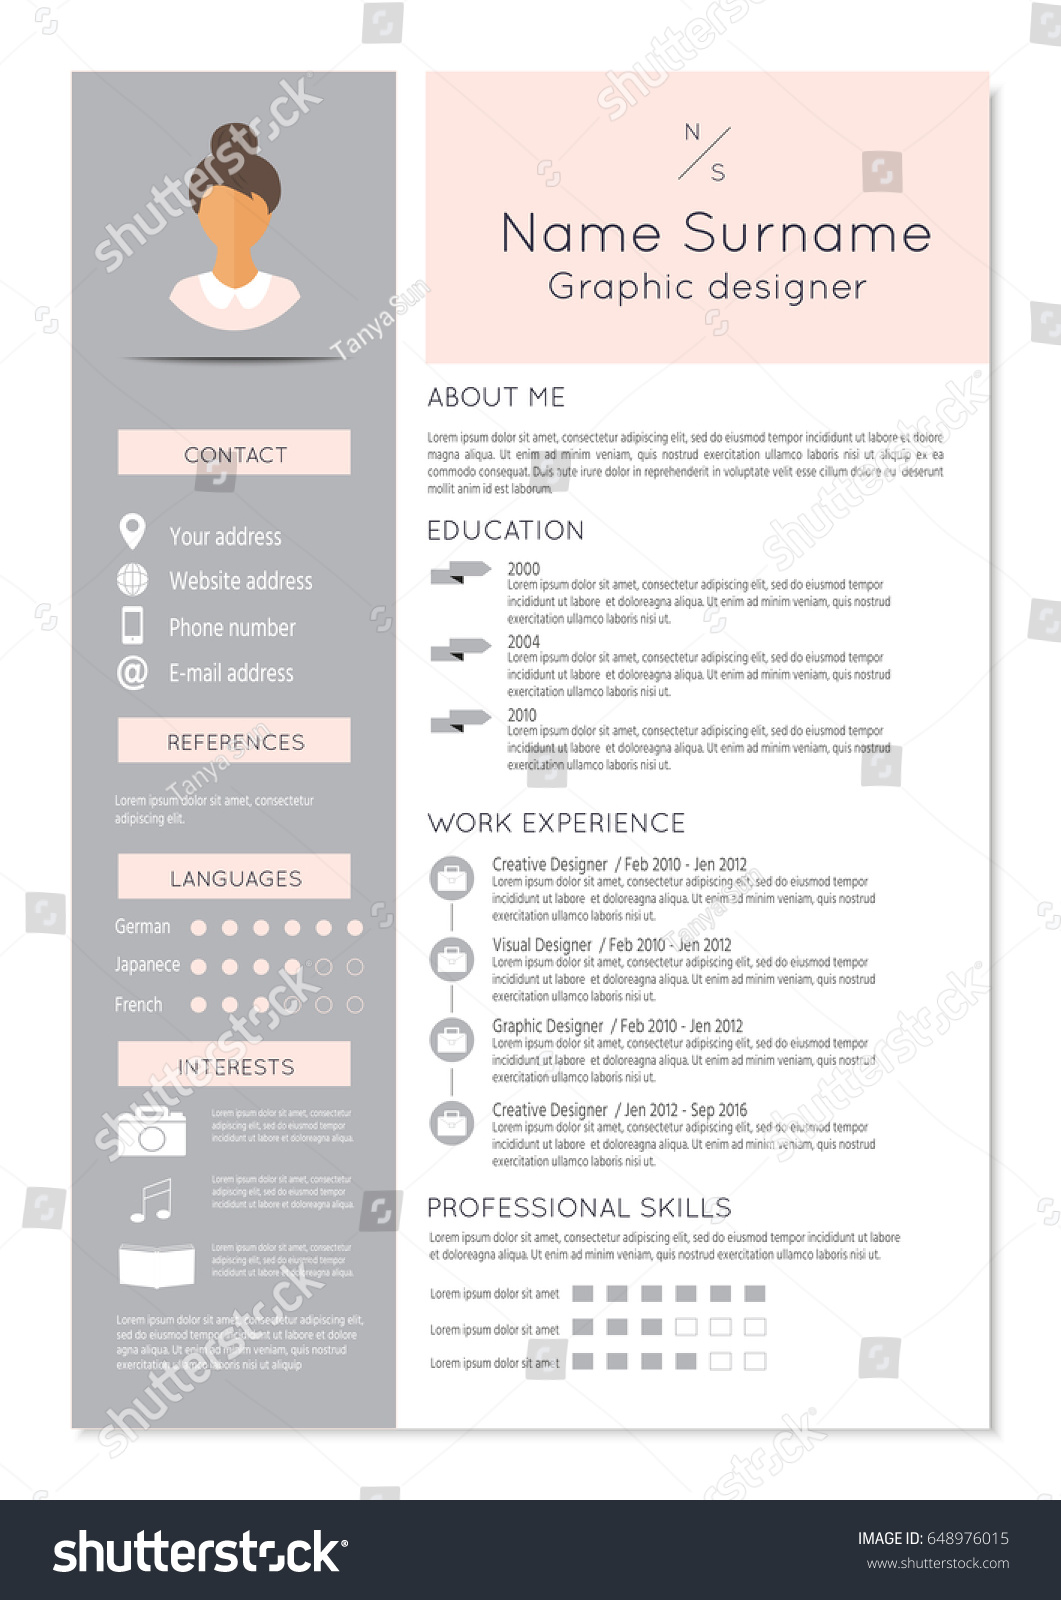 feminine resume infographic design stylish cv stock vector